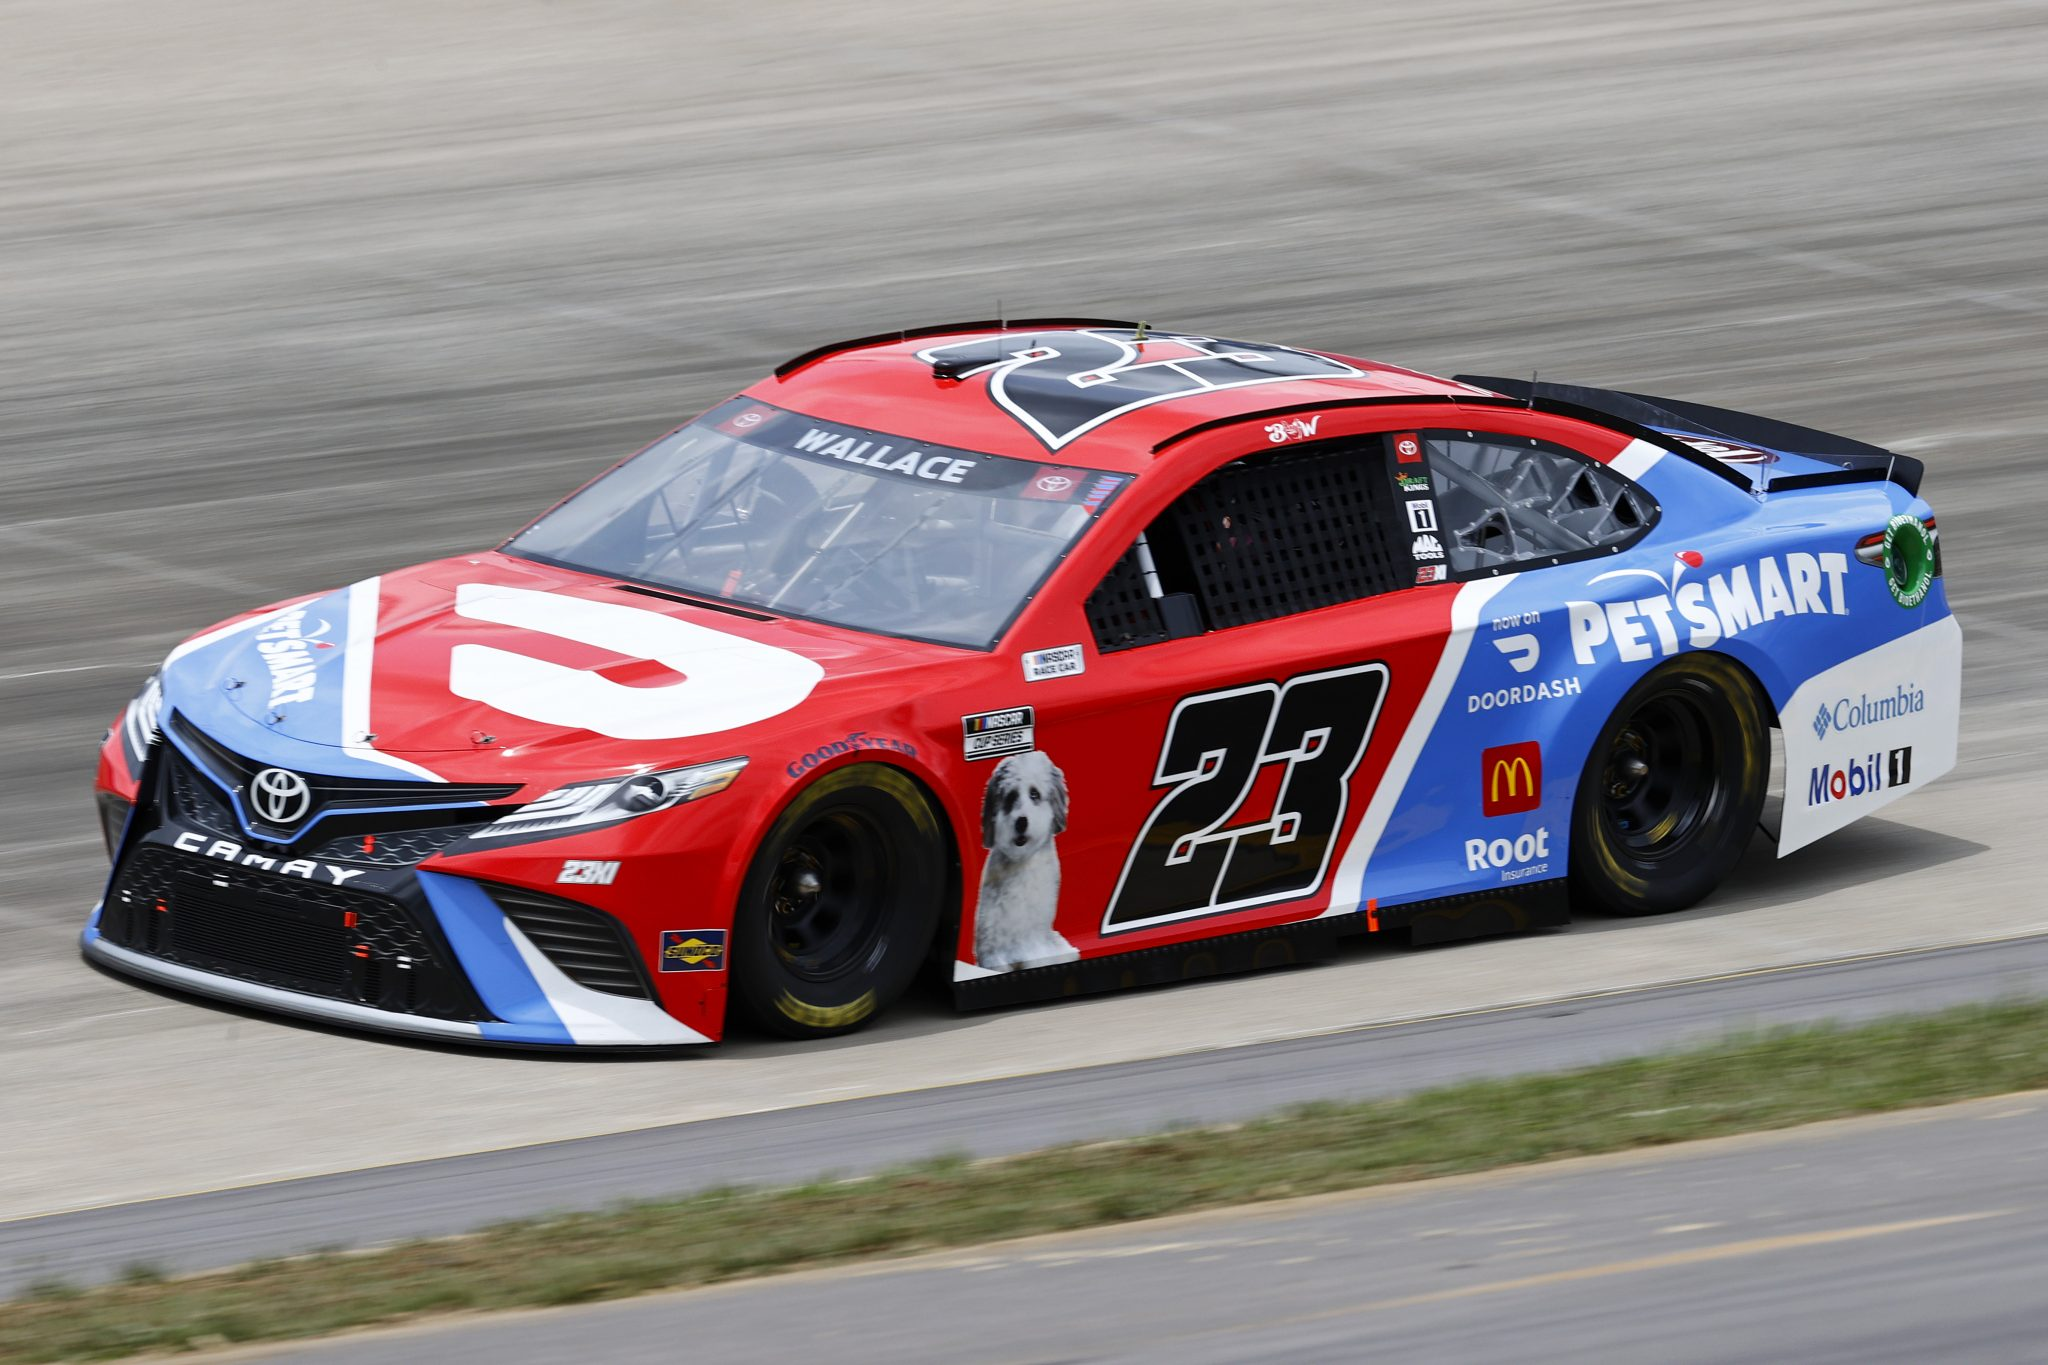 LEBANON, TENNESSEE - JUNE 19: Bubba Wallace, driver of the #23 DoorDash/PetSmart Toyota, drives during practice for the NASCAR Cup Series Ally 400 at Nashville Superspeedway on June 19, 2021 in Lebanon, Tennessee. (Photo by Jared C. Tilton/Getty Images)   Getty Images